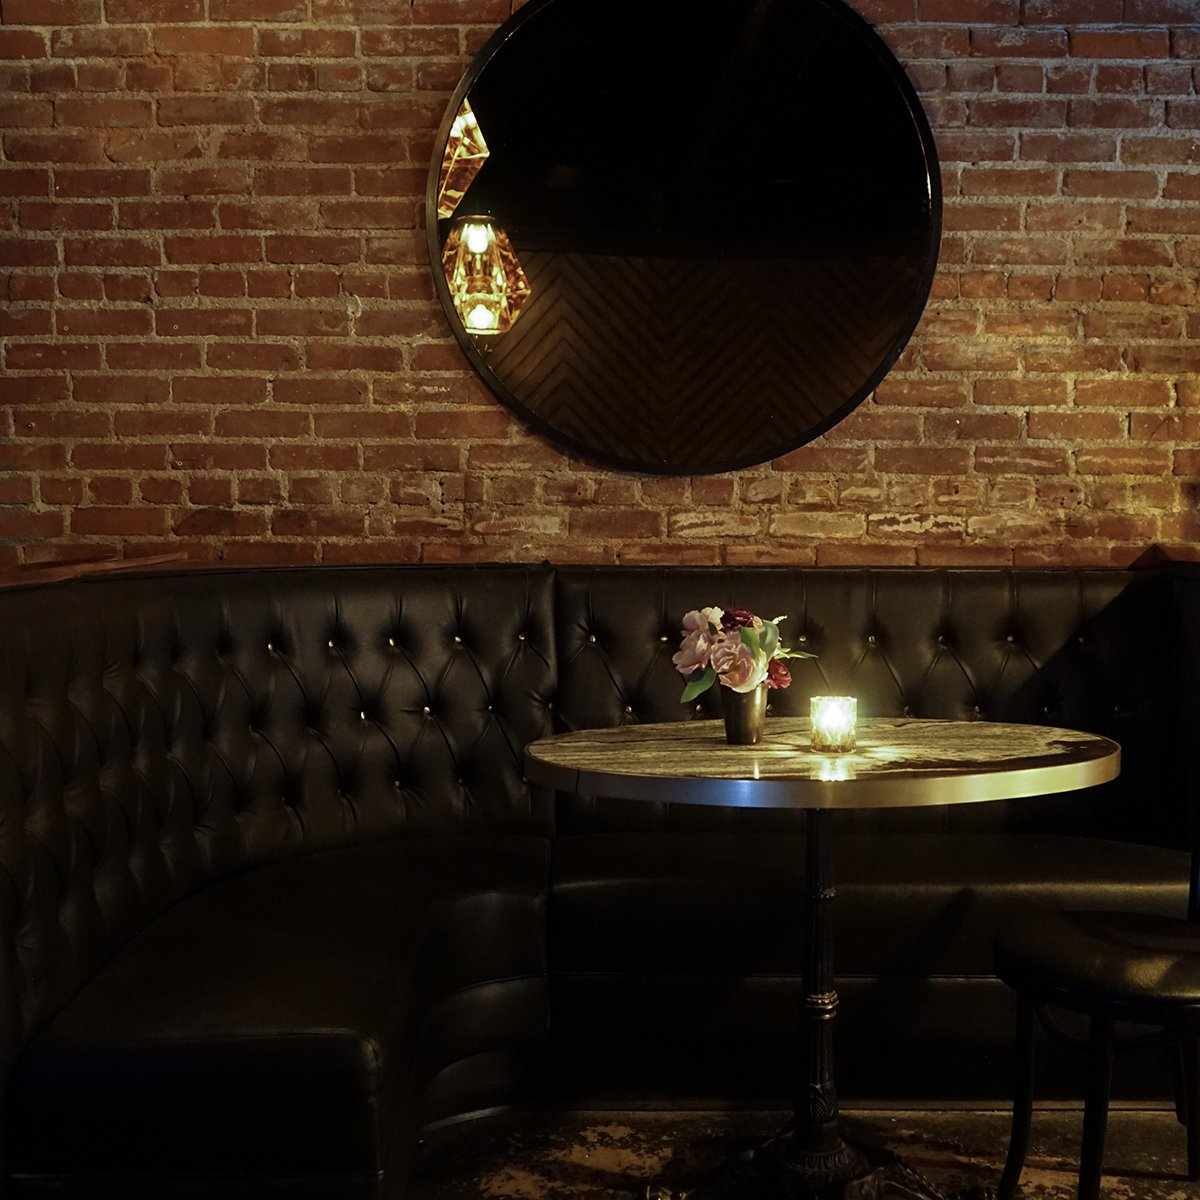 Gold-Diggers, Los Angeles - hotel lounge with black leather couch, round metal table, brick walls, and large round wall mirror